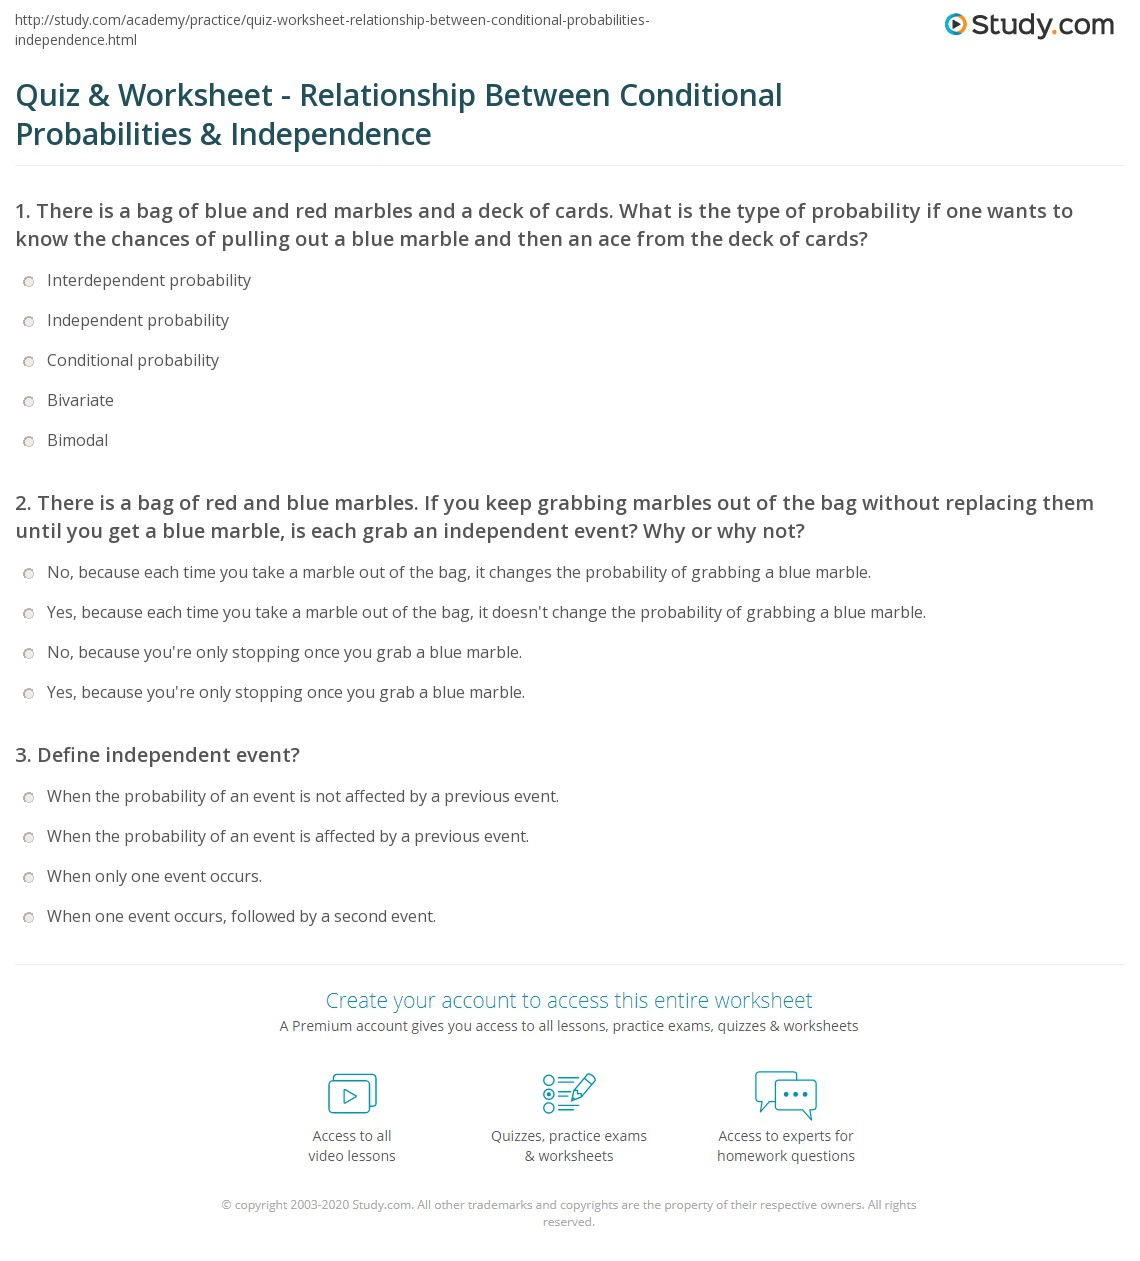 Quiz Worksheet Relationship Between Conditional Probabilities